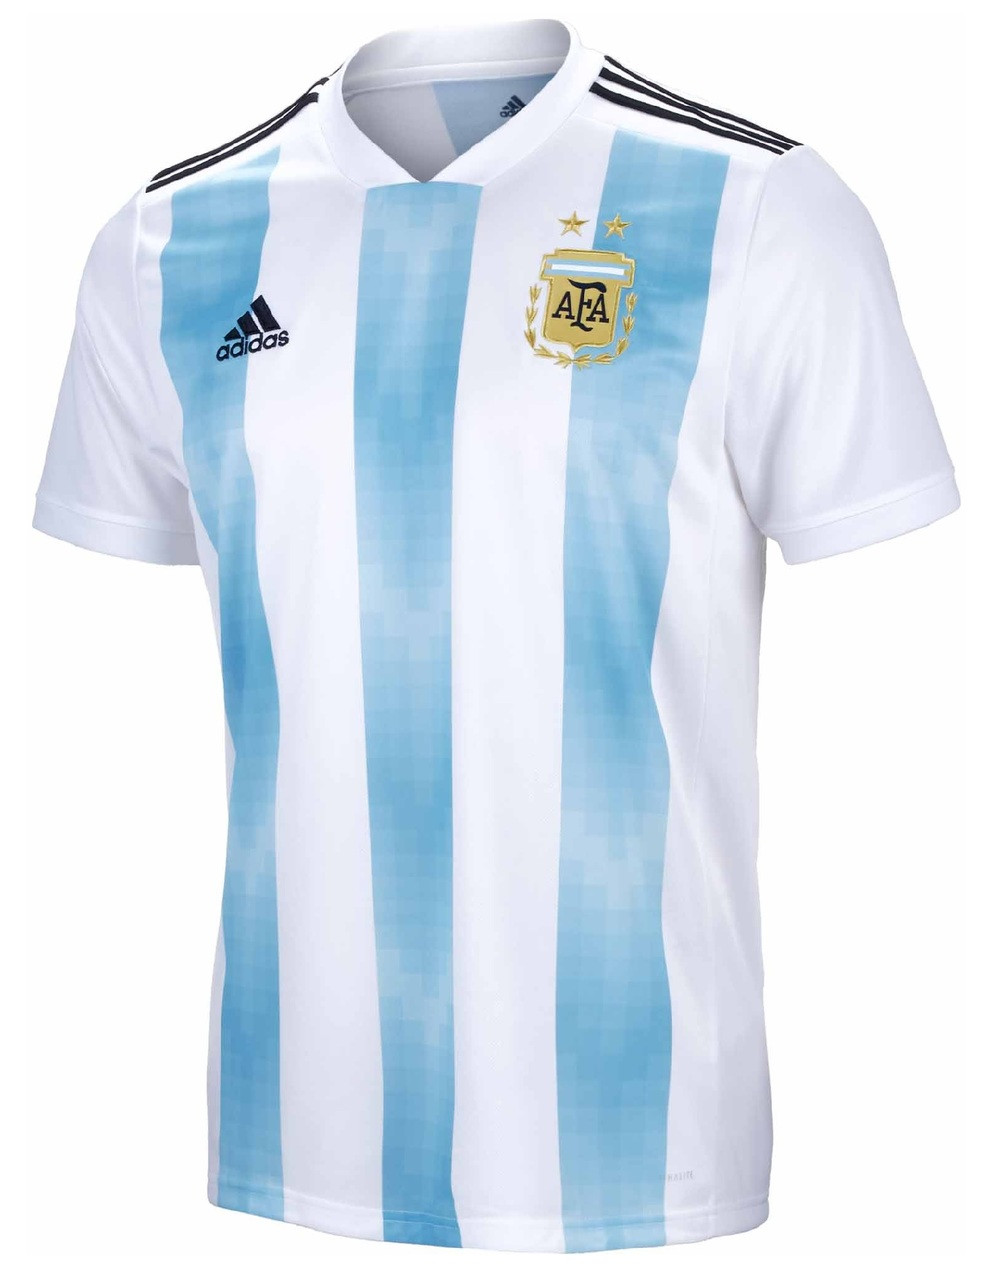 adidas Argentina World Cup 2017 18 Home Jersey - White Clear Blue Black  (111117) - ohp soccer 8a2c7369a